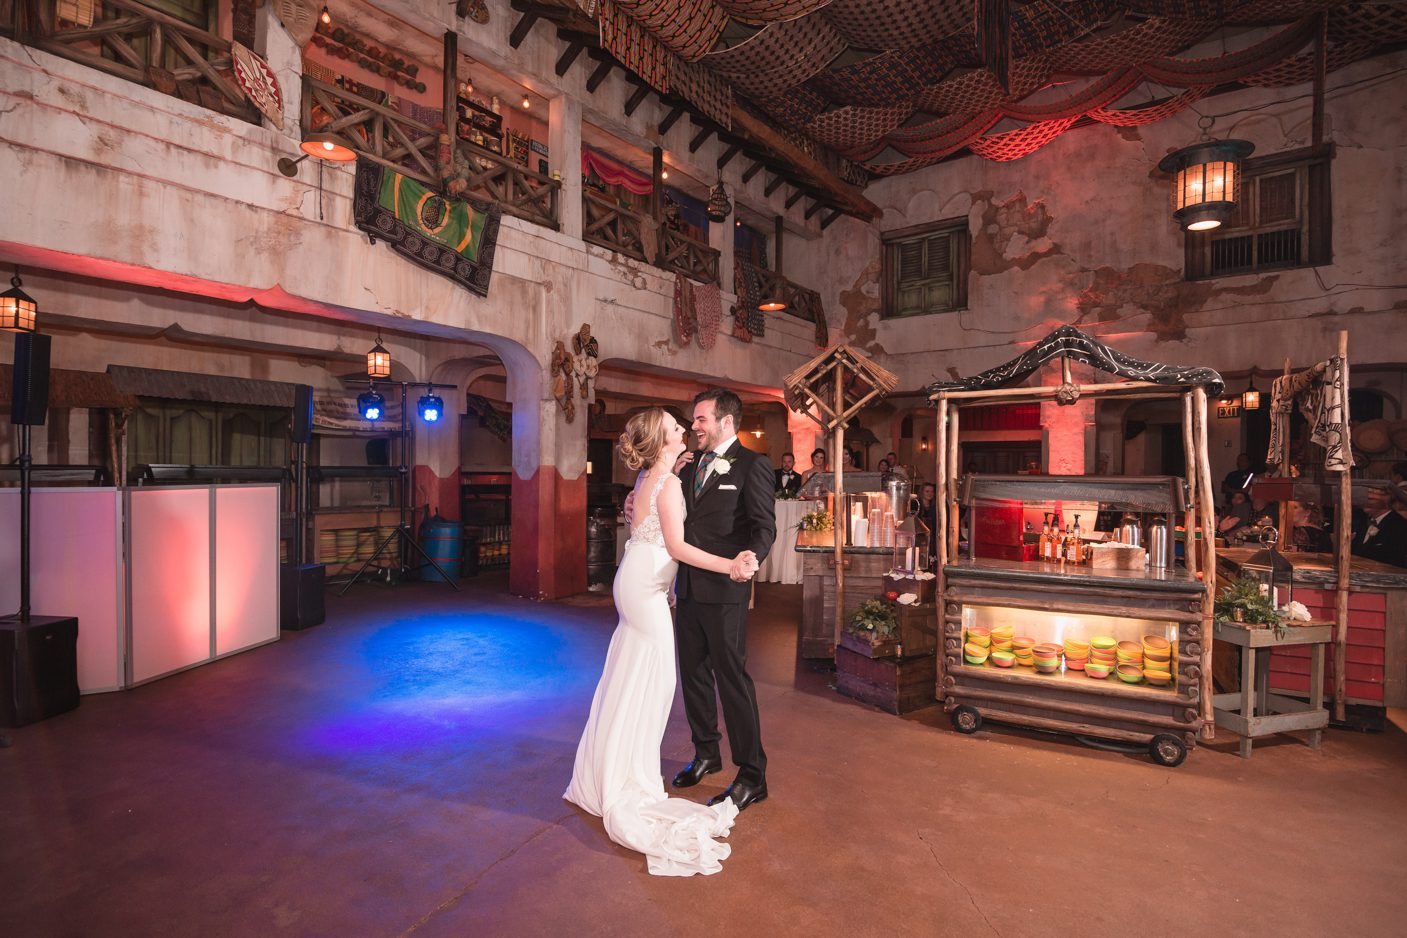 First dance at Tusker Hall in Animal Kingdom at Disney in Orlando for a fairytale wedding by top photographer